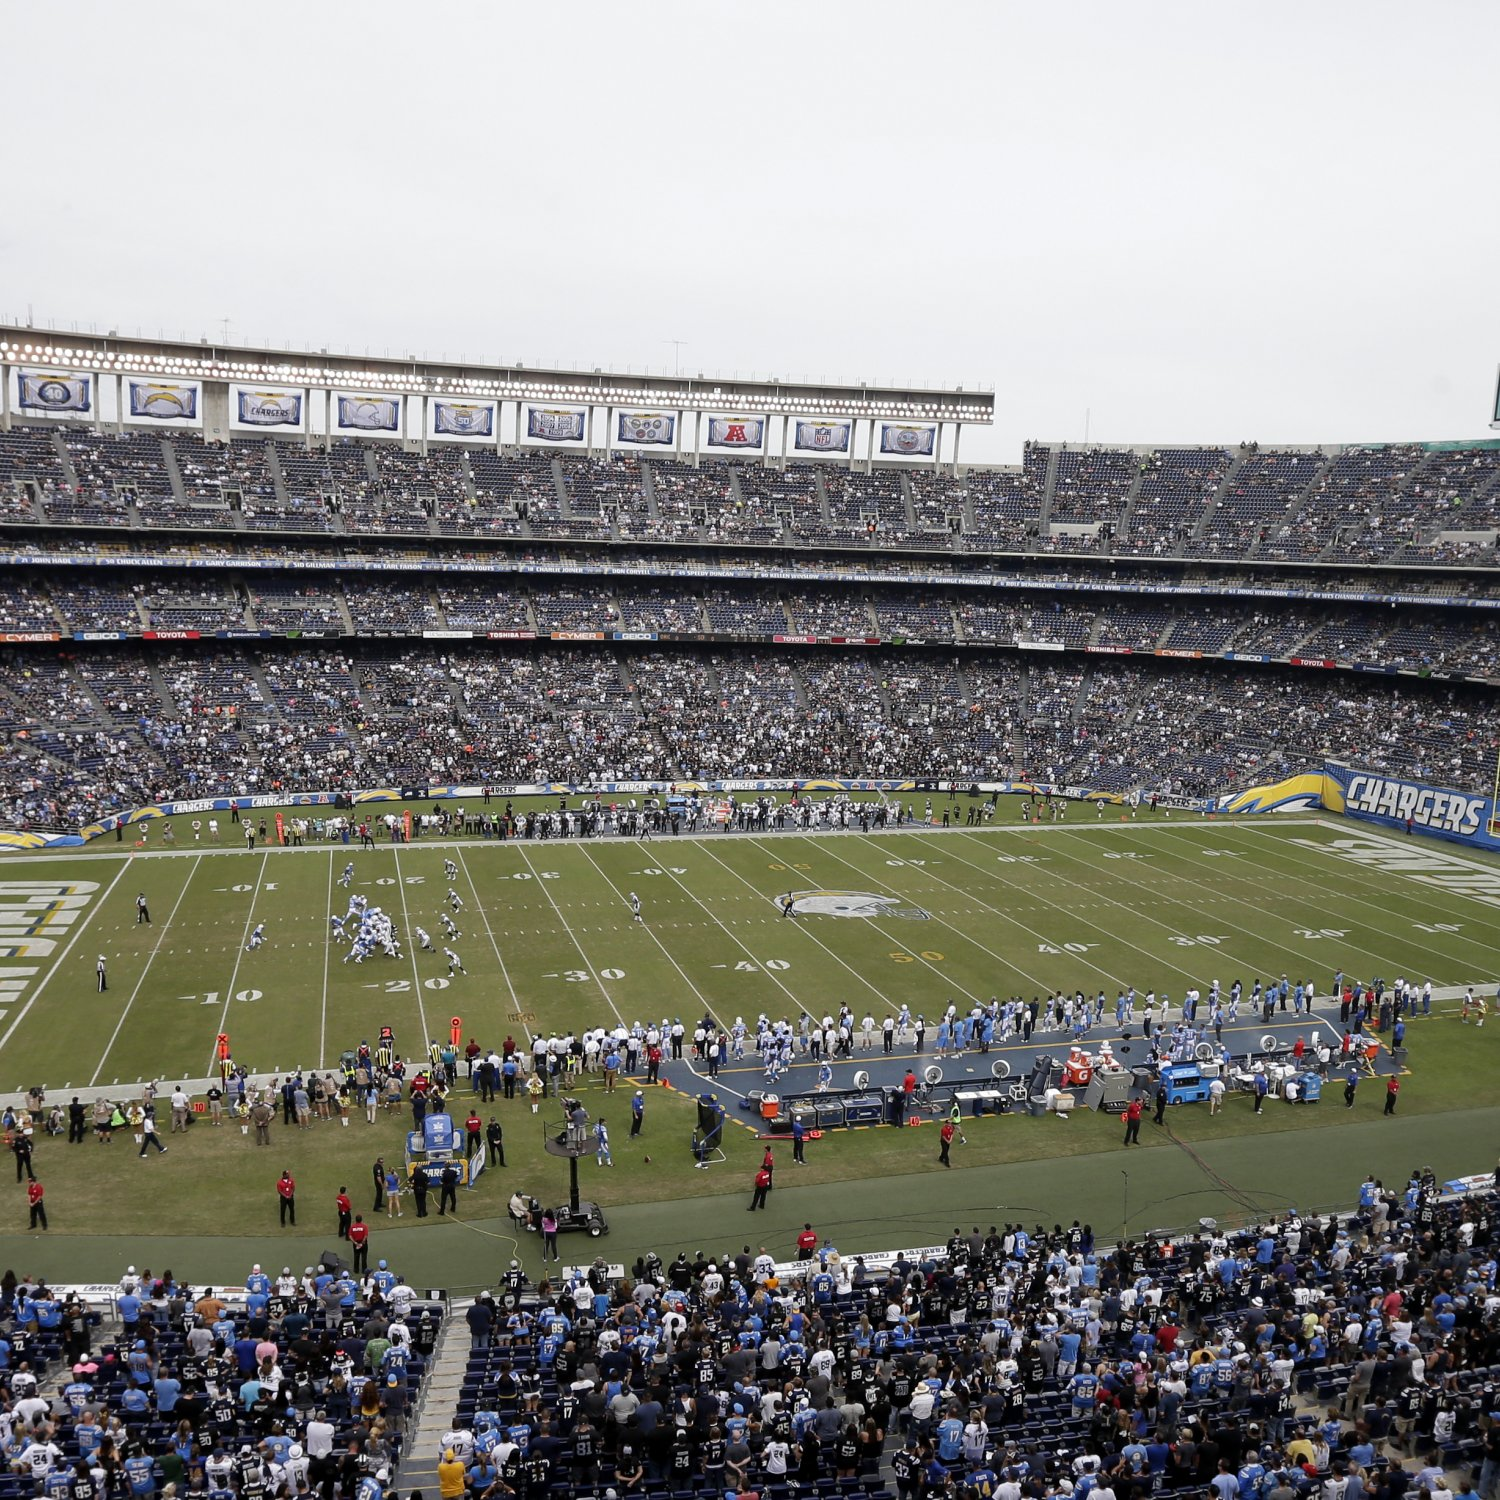 San Diego Chargers Arena: Fans Allegedly Denied Entry Temporarily To Qualcomm